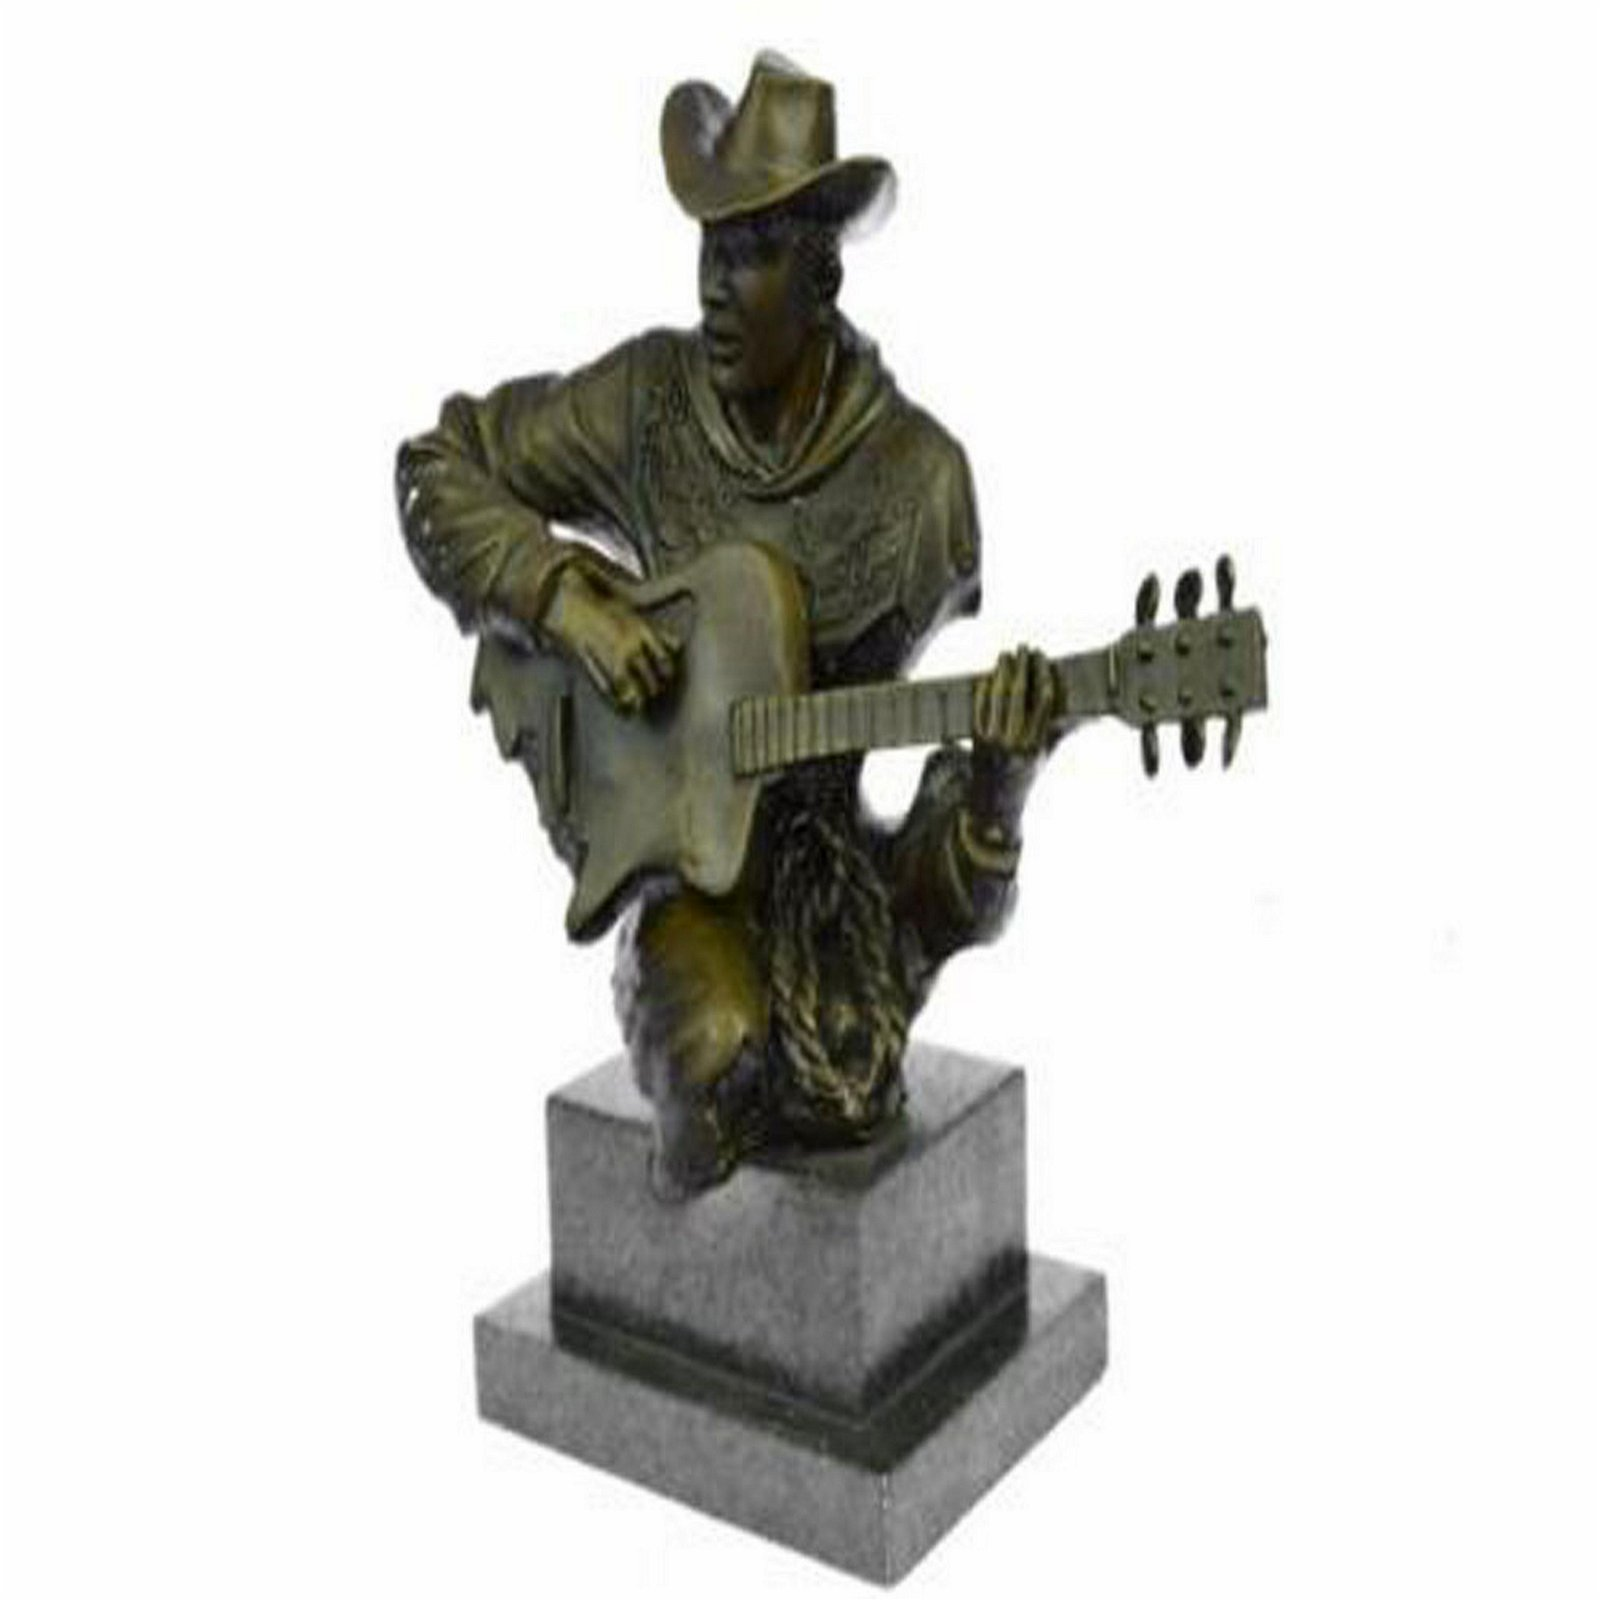 Guitar Player Bronze Figurine on Marble Base Statue